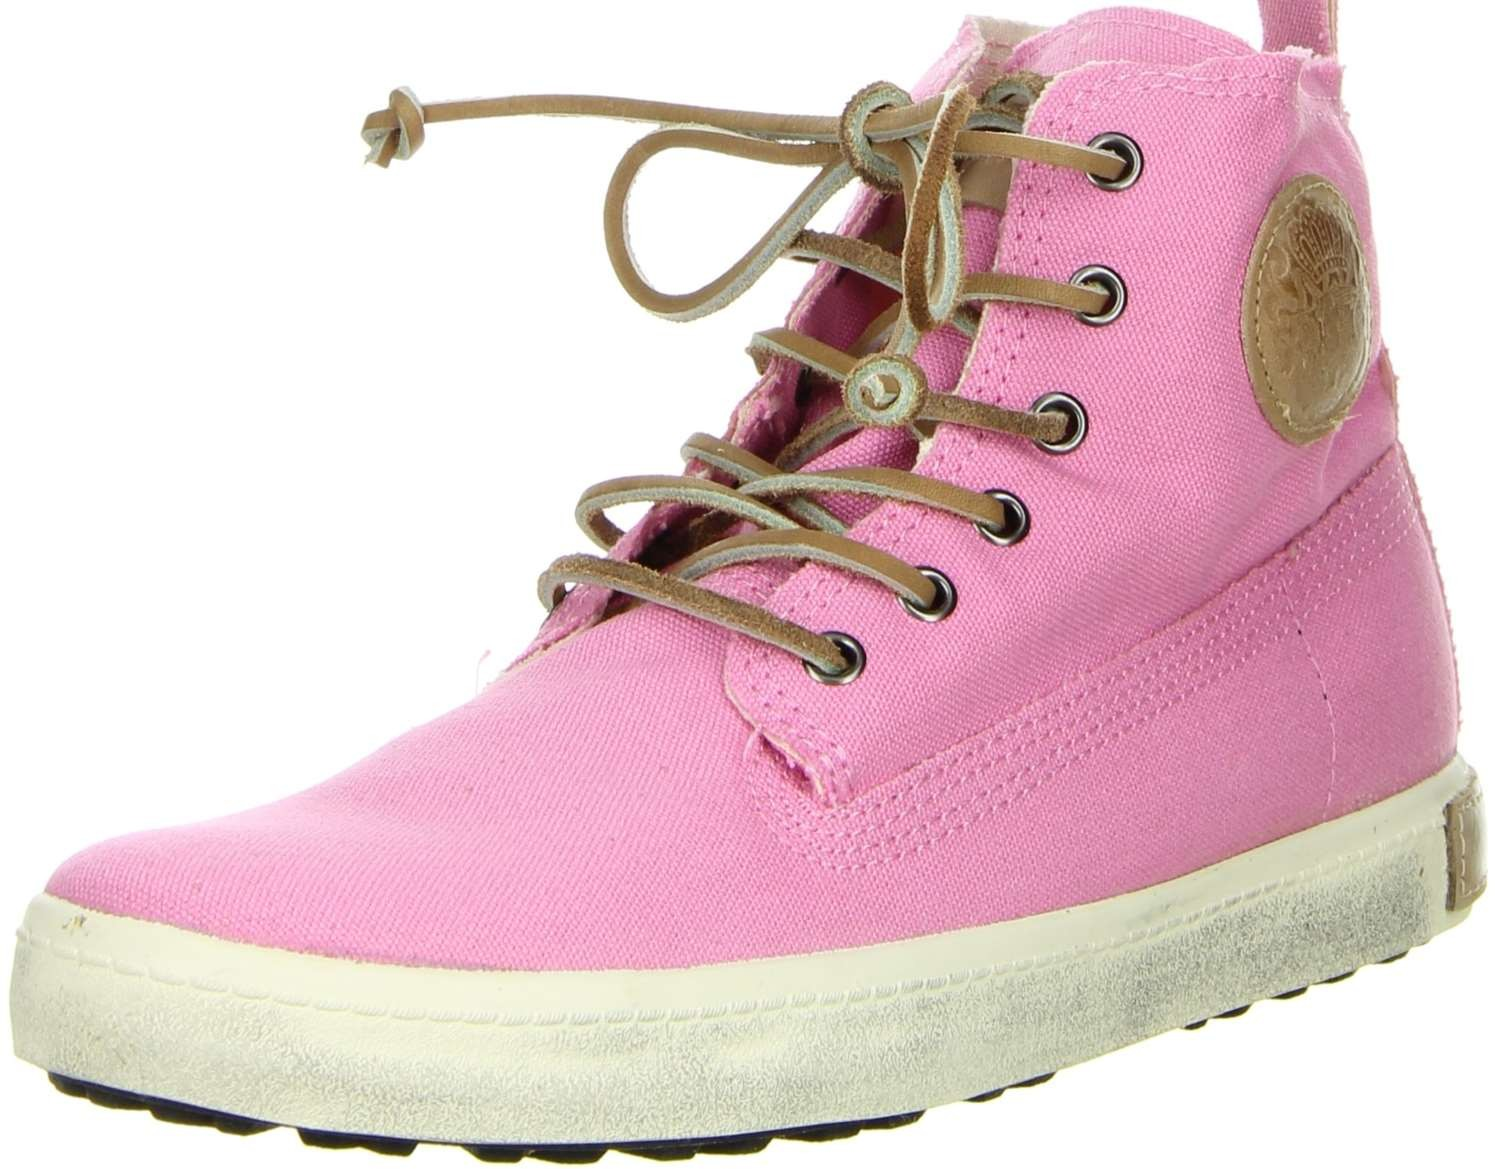 blackstone damen high top sneaker pink damenschuhe. Black Bedroom Furniture Sets. Home Design Ideas